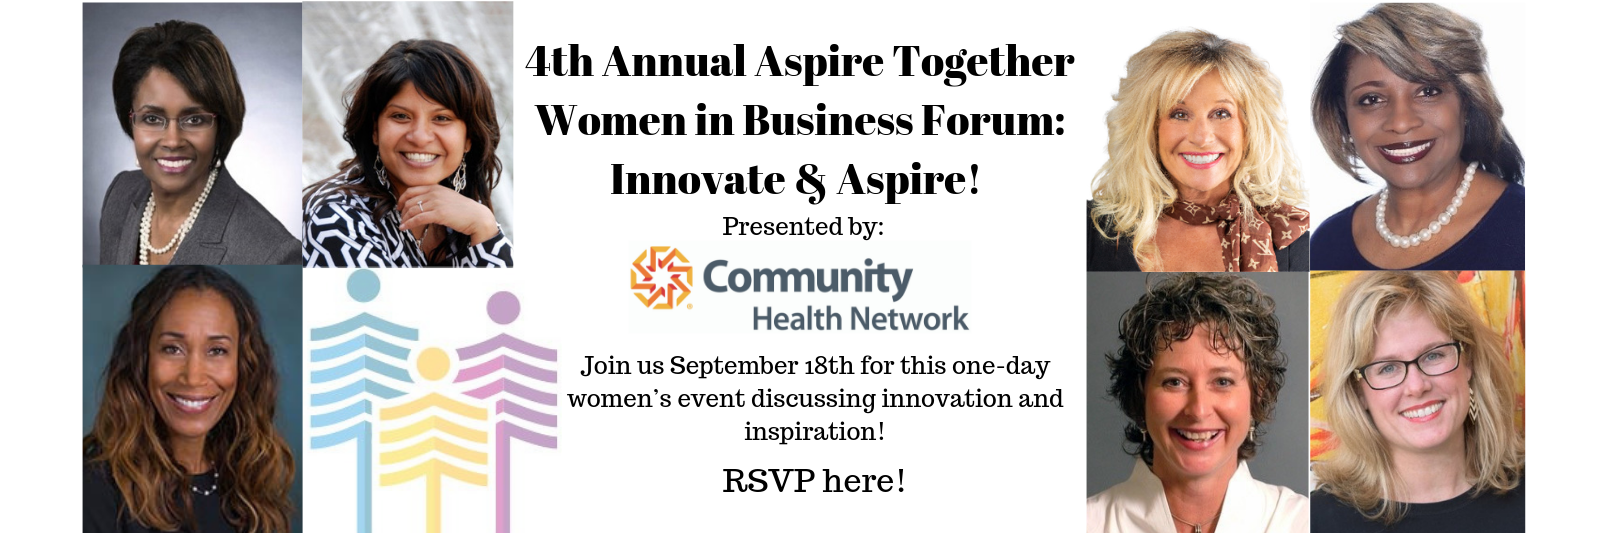 2019-Aspire-Together_-Innovate-and-Aspire.-(1).png